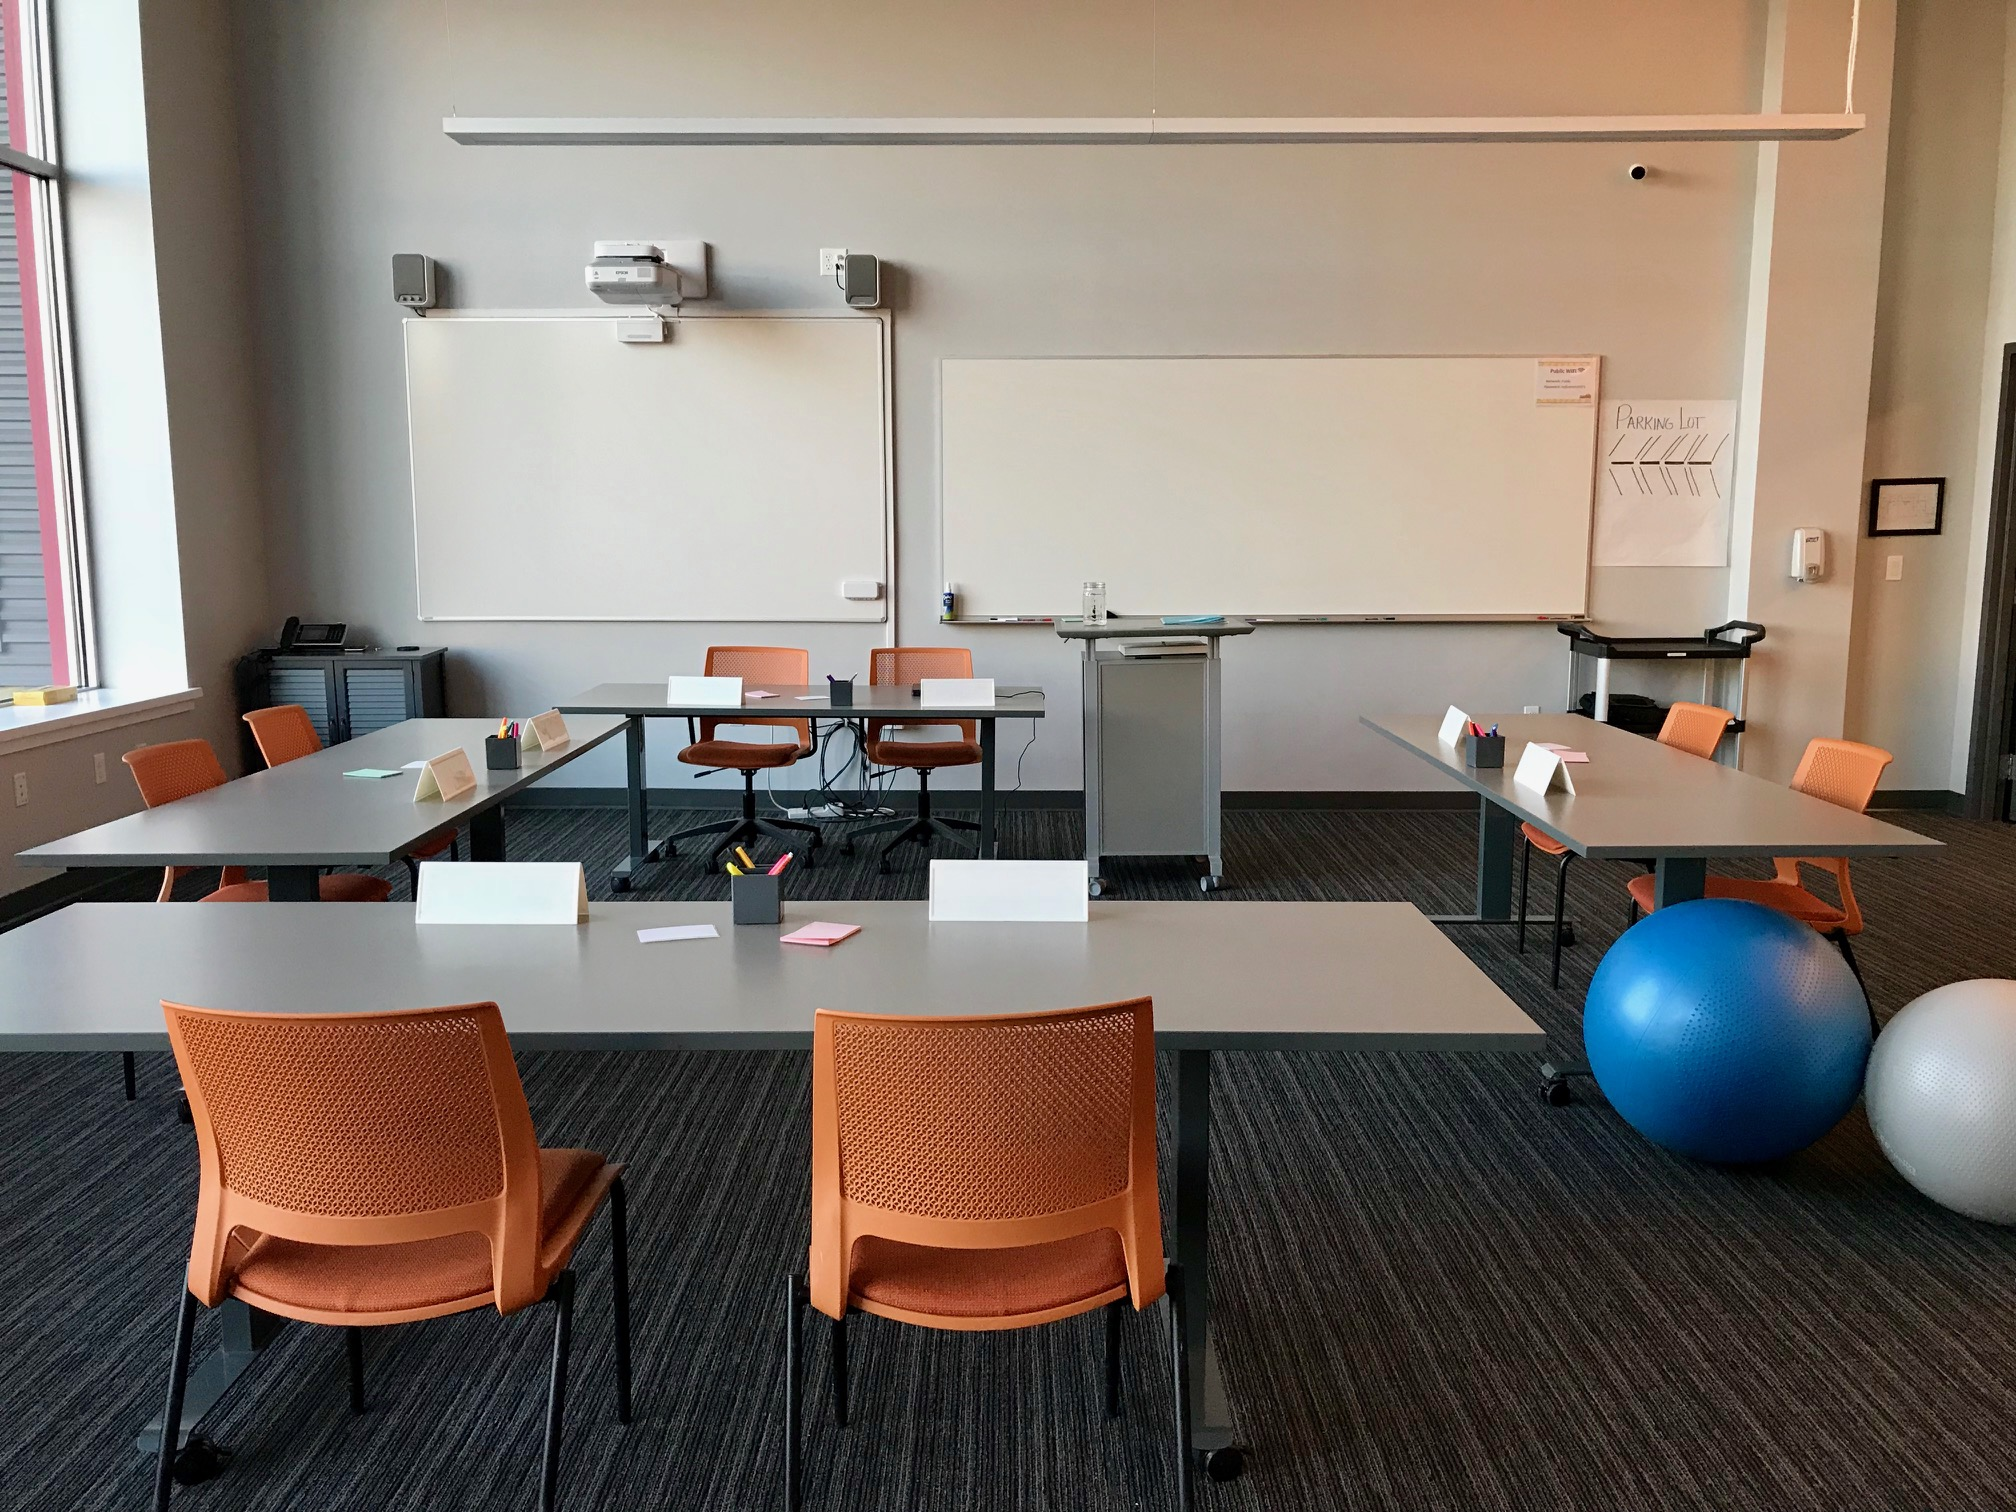 Our Space - We currently meet in the space pictured here. The space is very open & bright with the option to dim the lighting located on the wall (as opposed to overhead). Alternative seating such as exercise balls and bean bags are provided for members to enjoy.